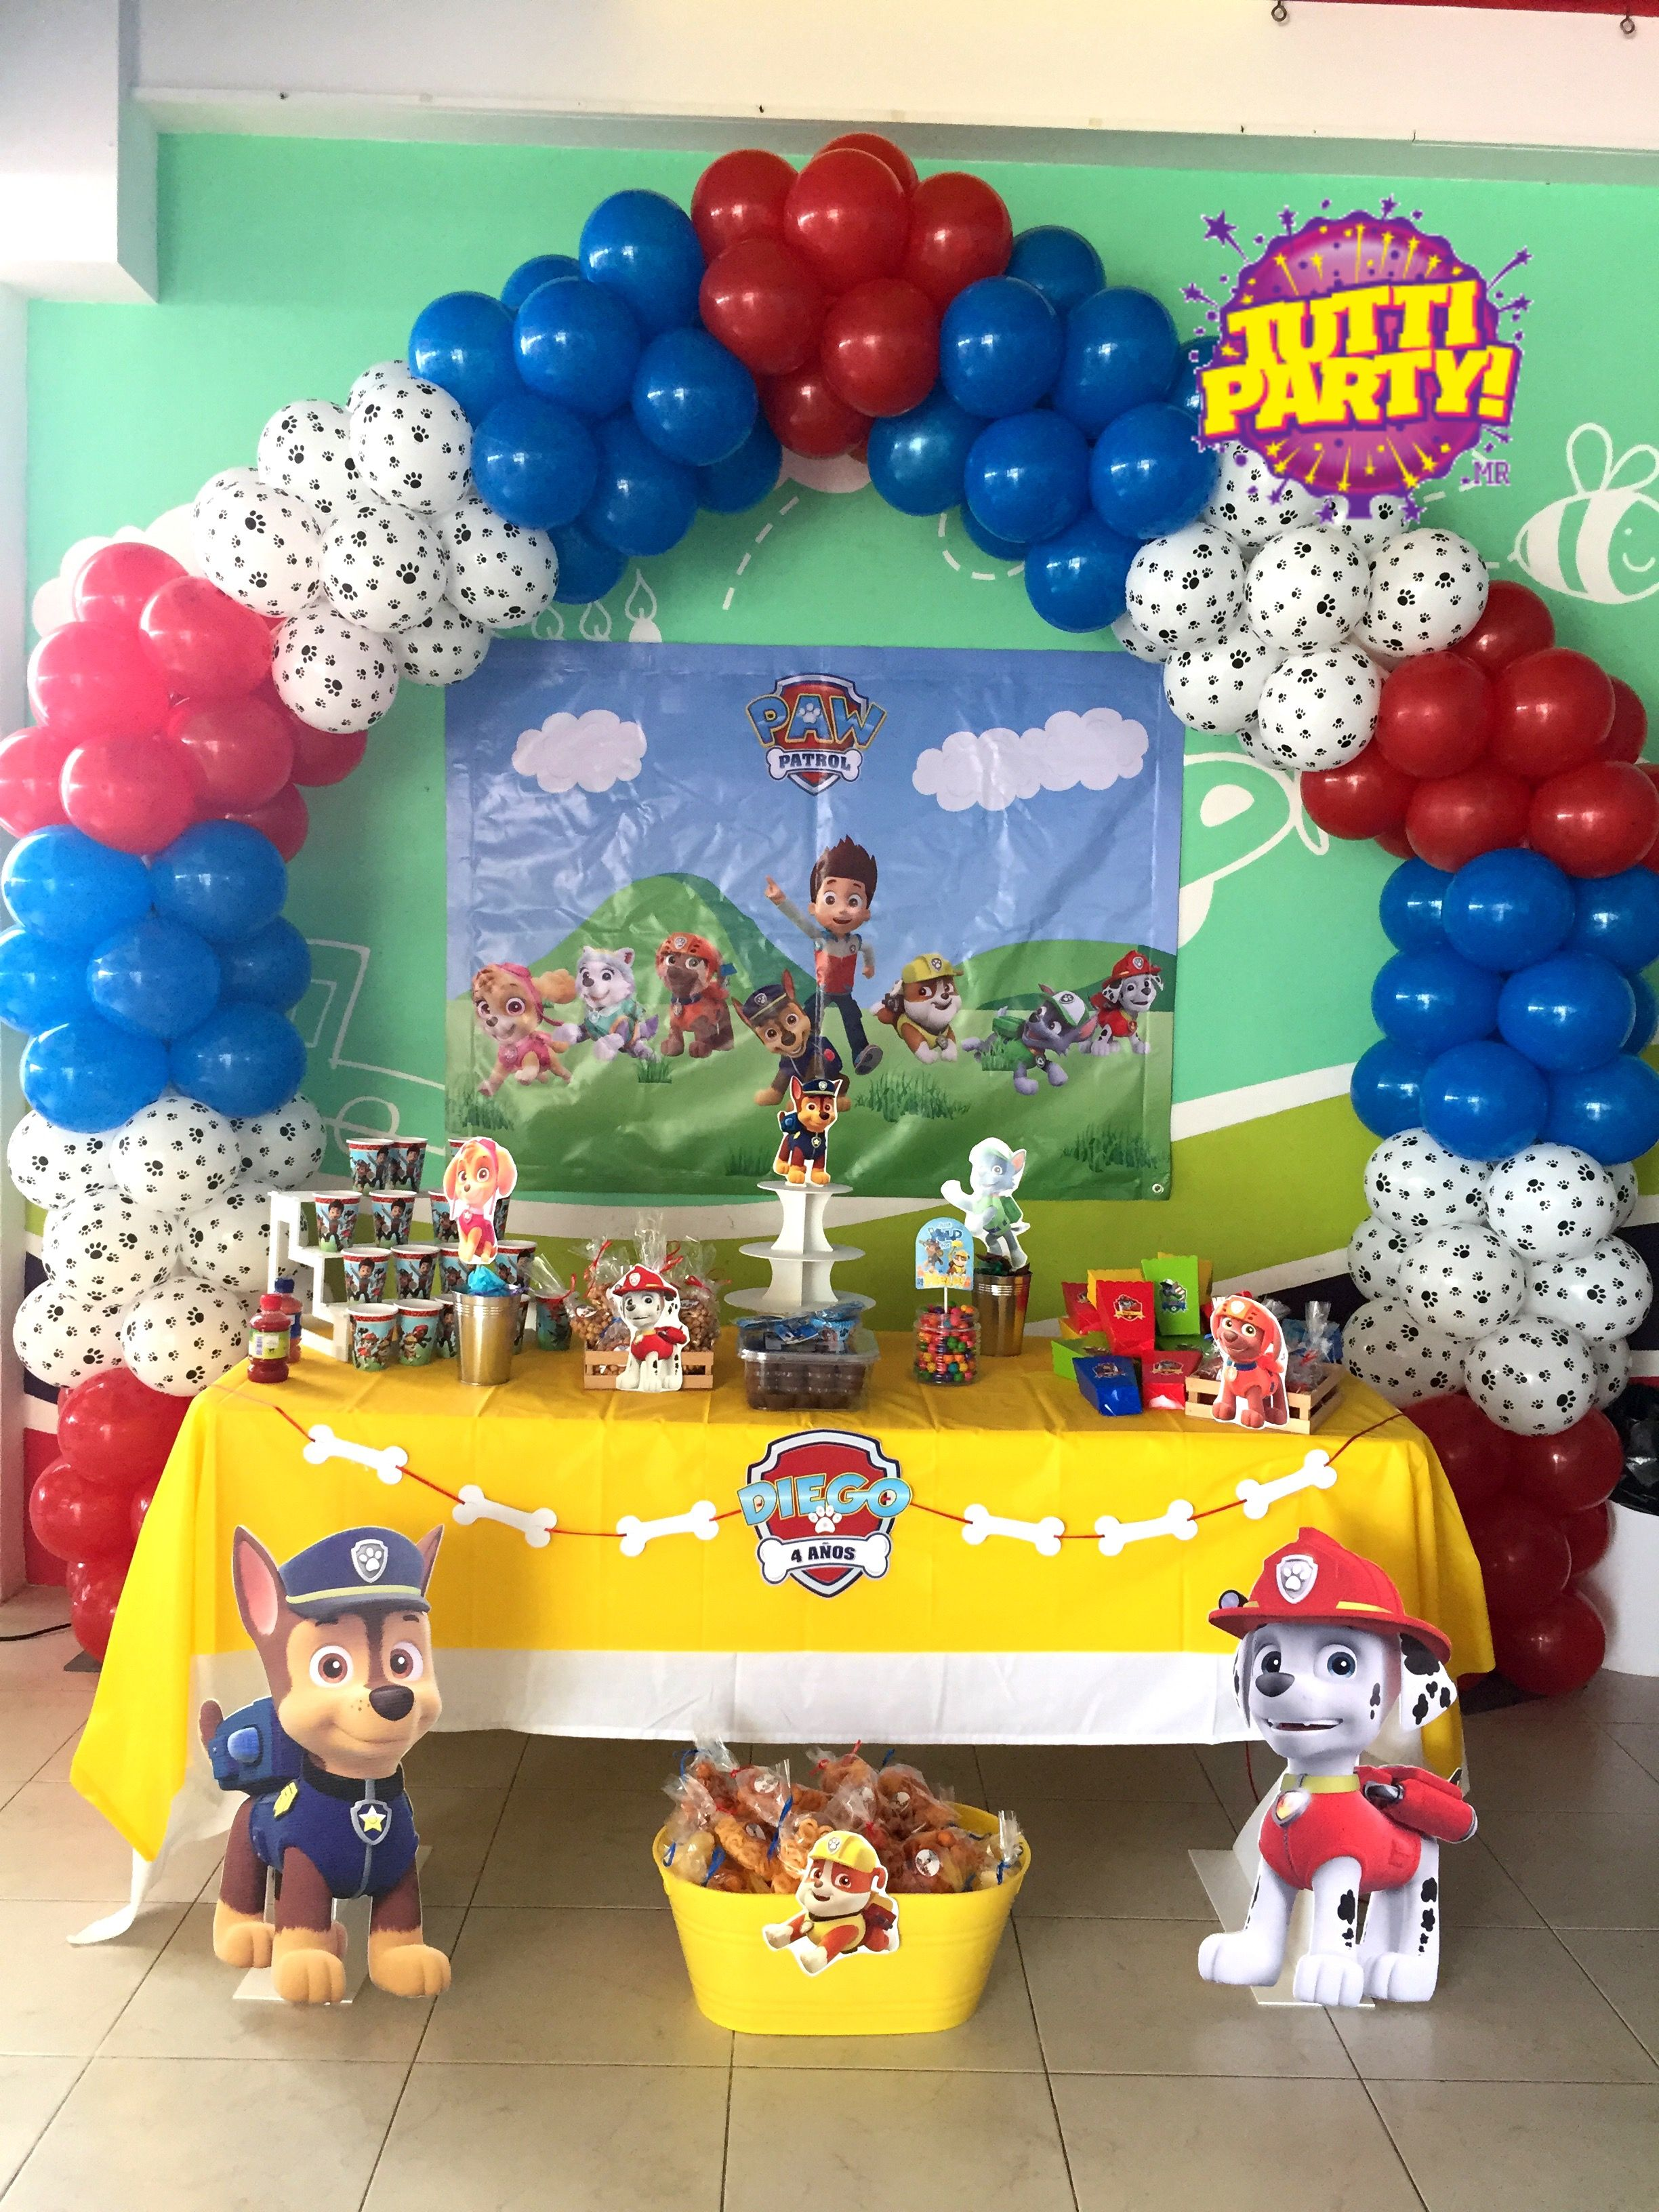 Paw patrol arch balloons decorations, paw patrol Party decorations ...